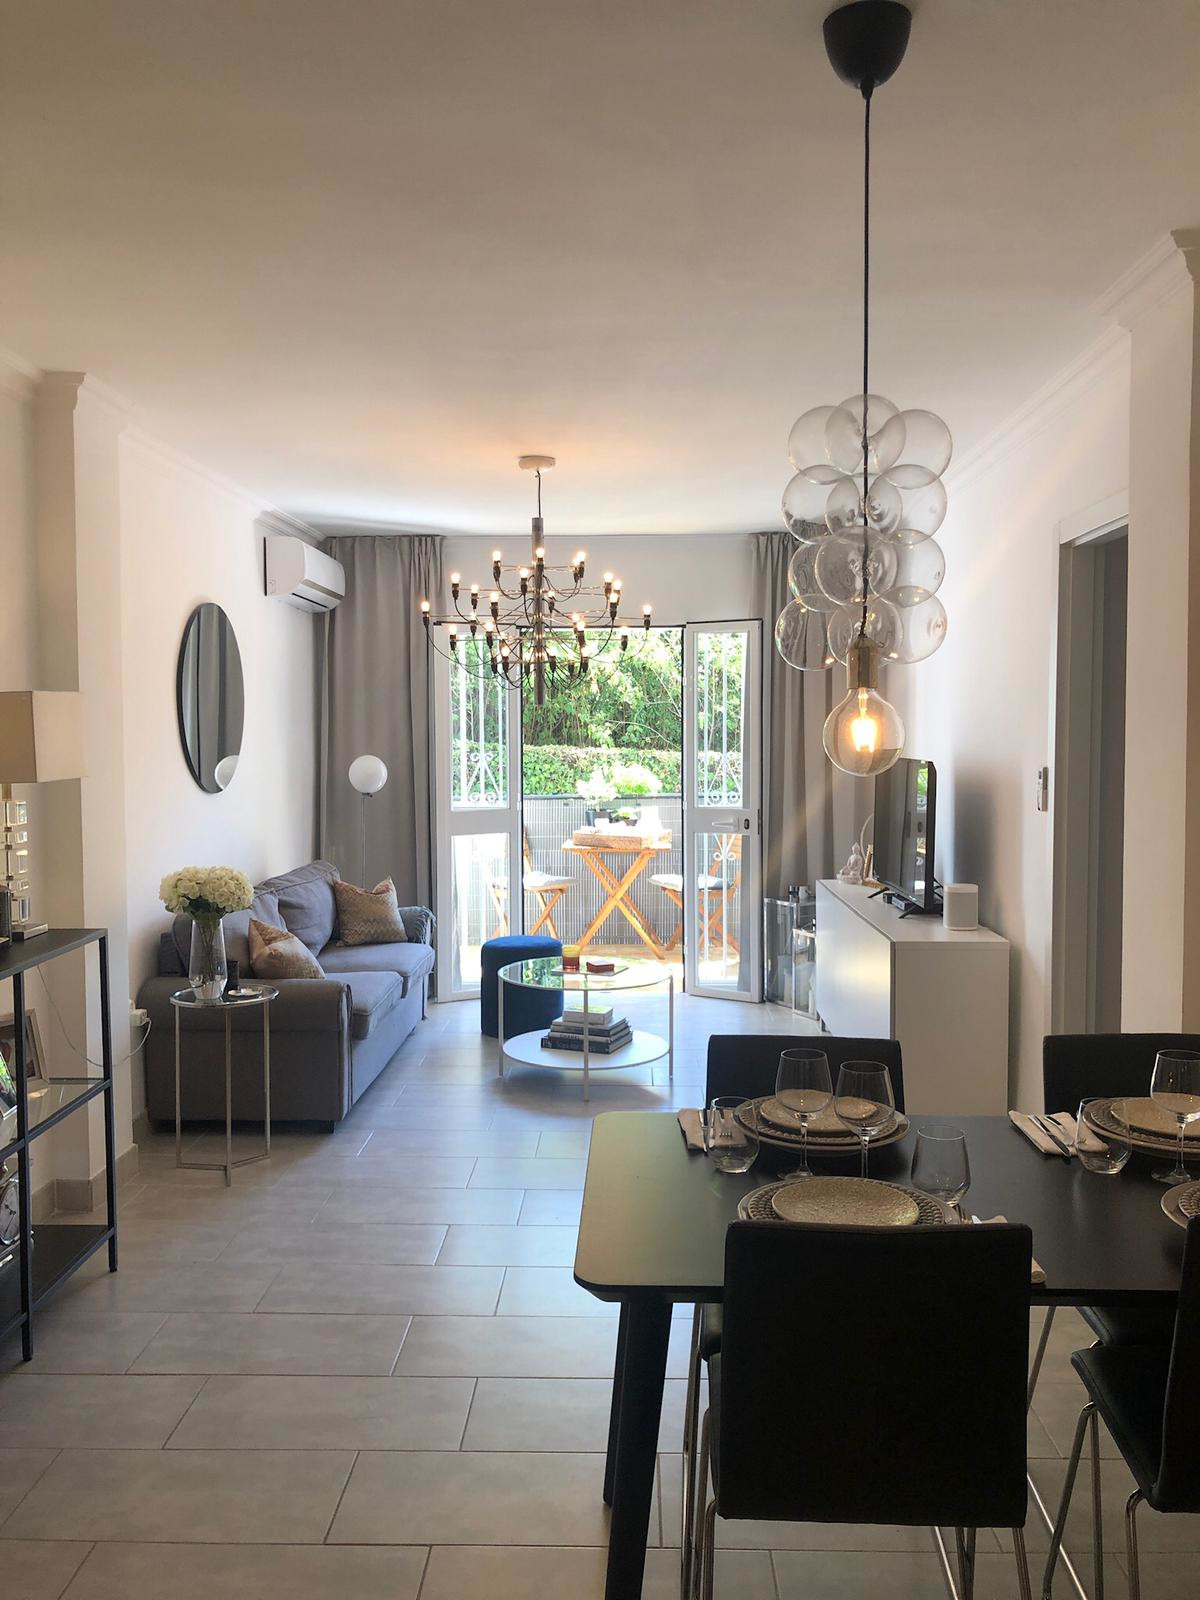 Beautiful 2 line beach ground floor apartment located 1 minute walking distance from the Maracas Bea,Spain